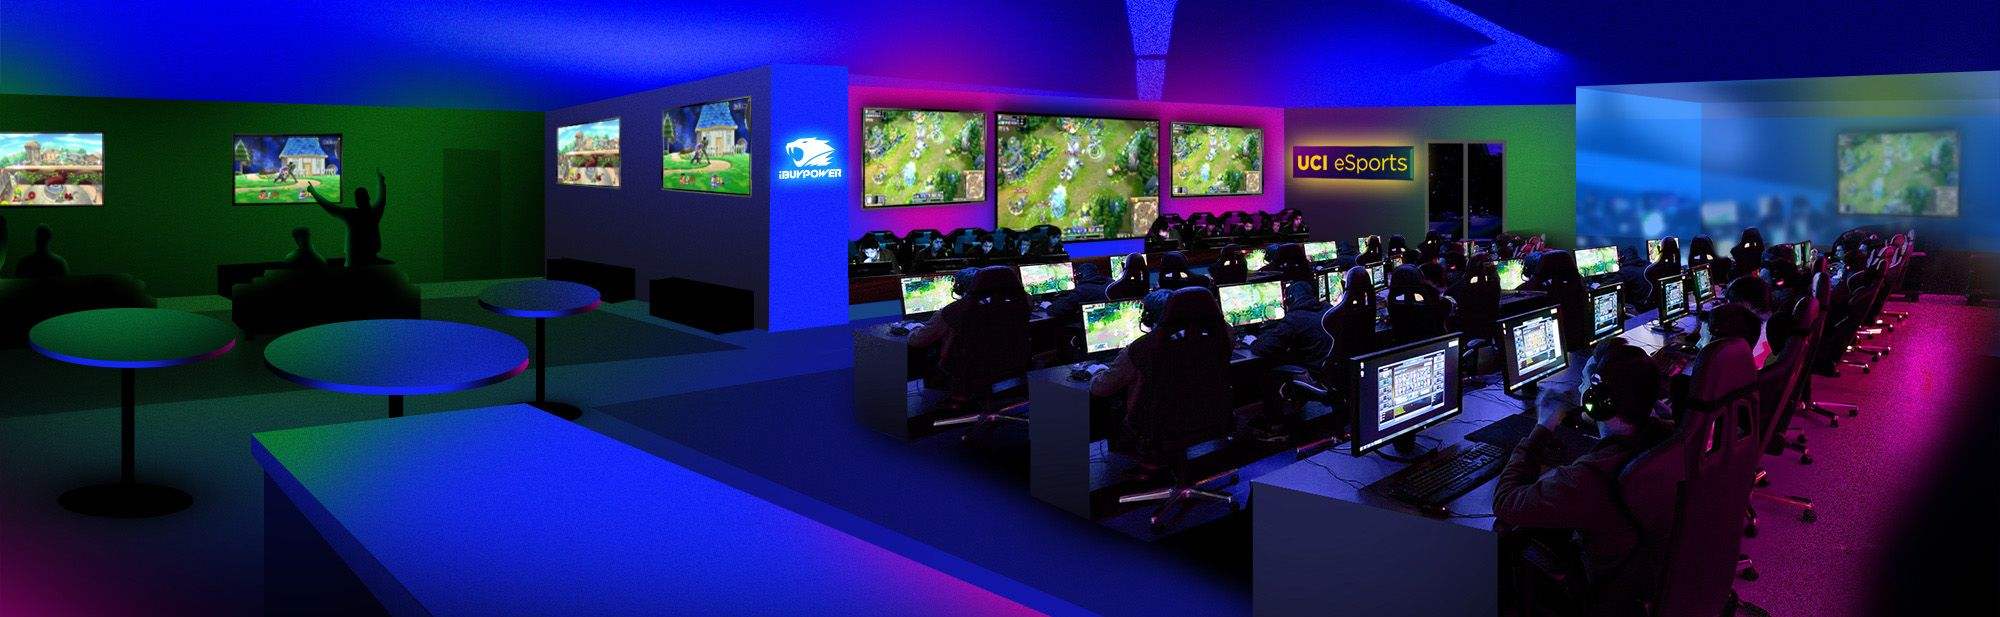 This one shows the lighting we want. Video game rooms